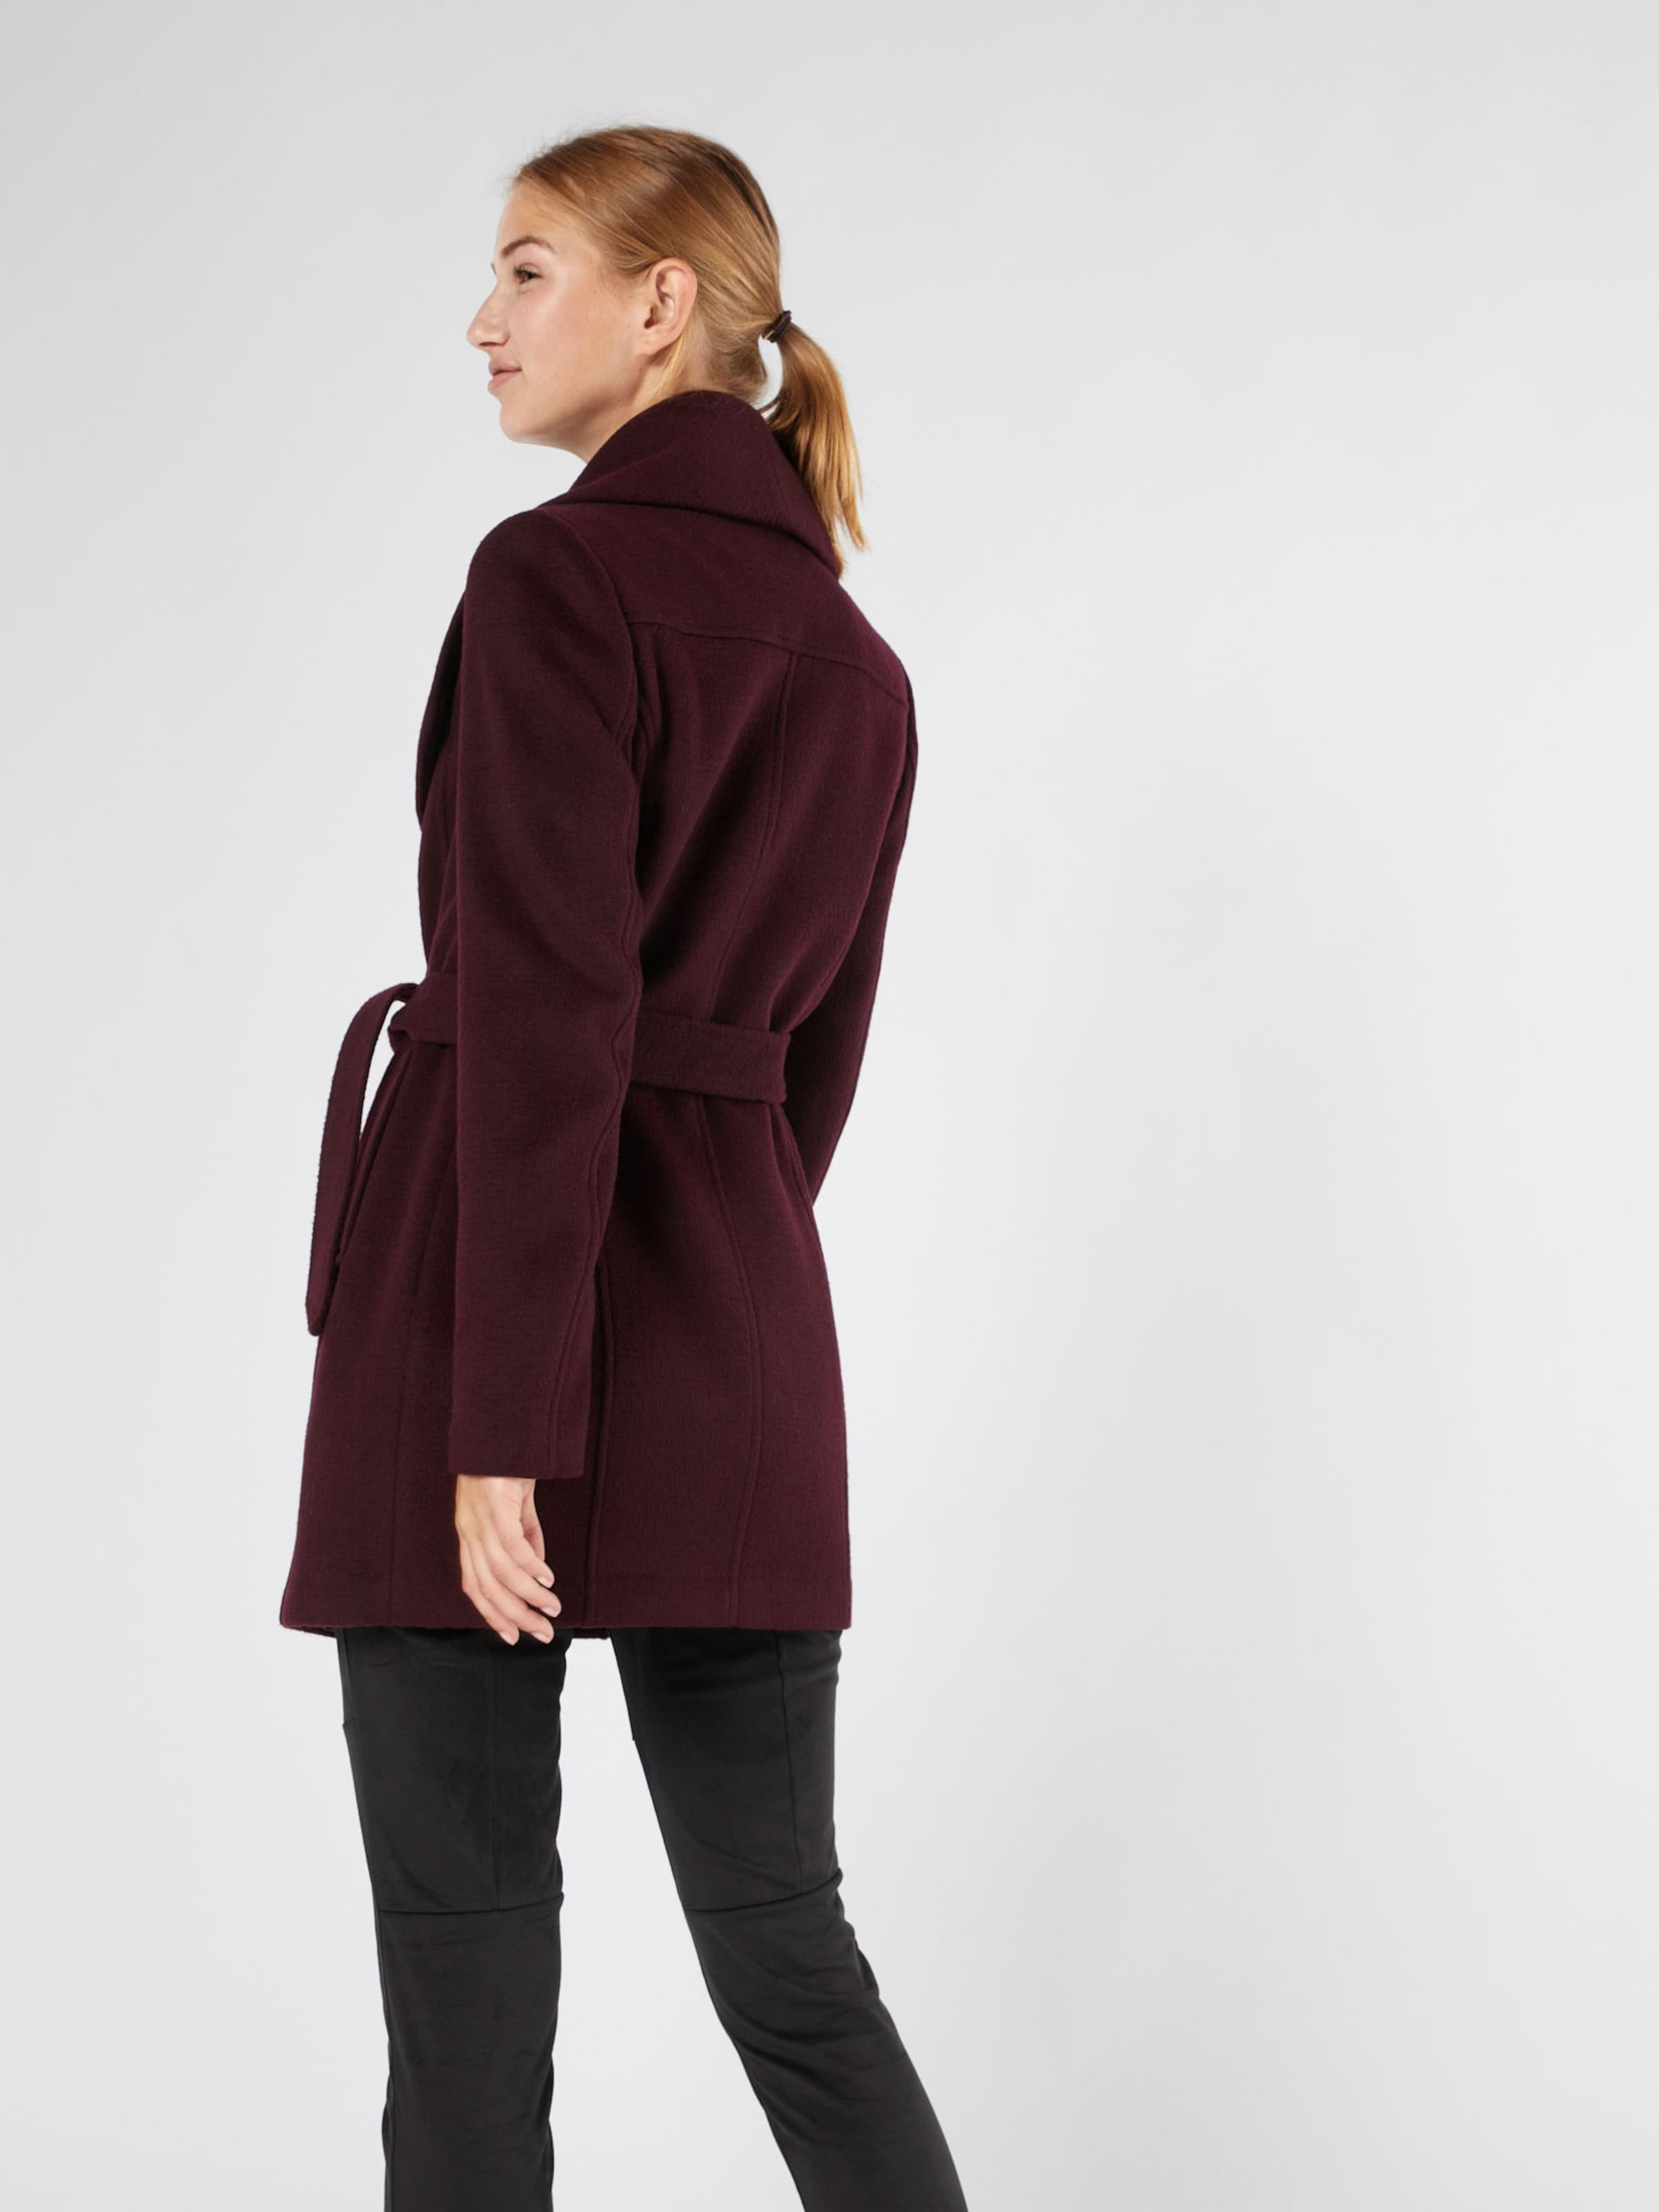 Mantel About In You 'emmely Bordeaux gbf76yY